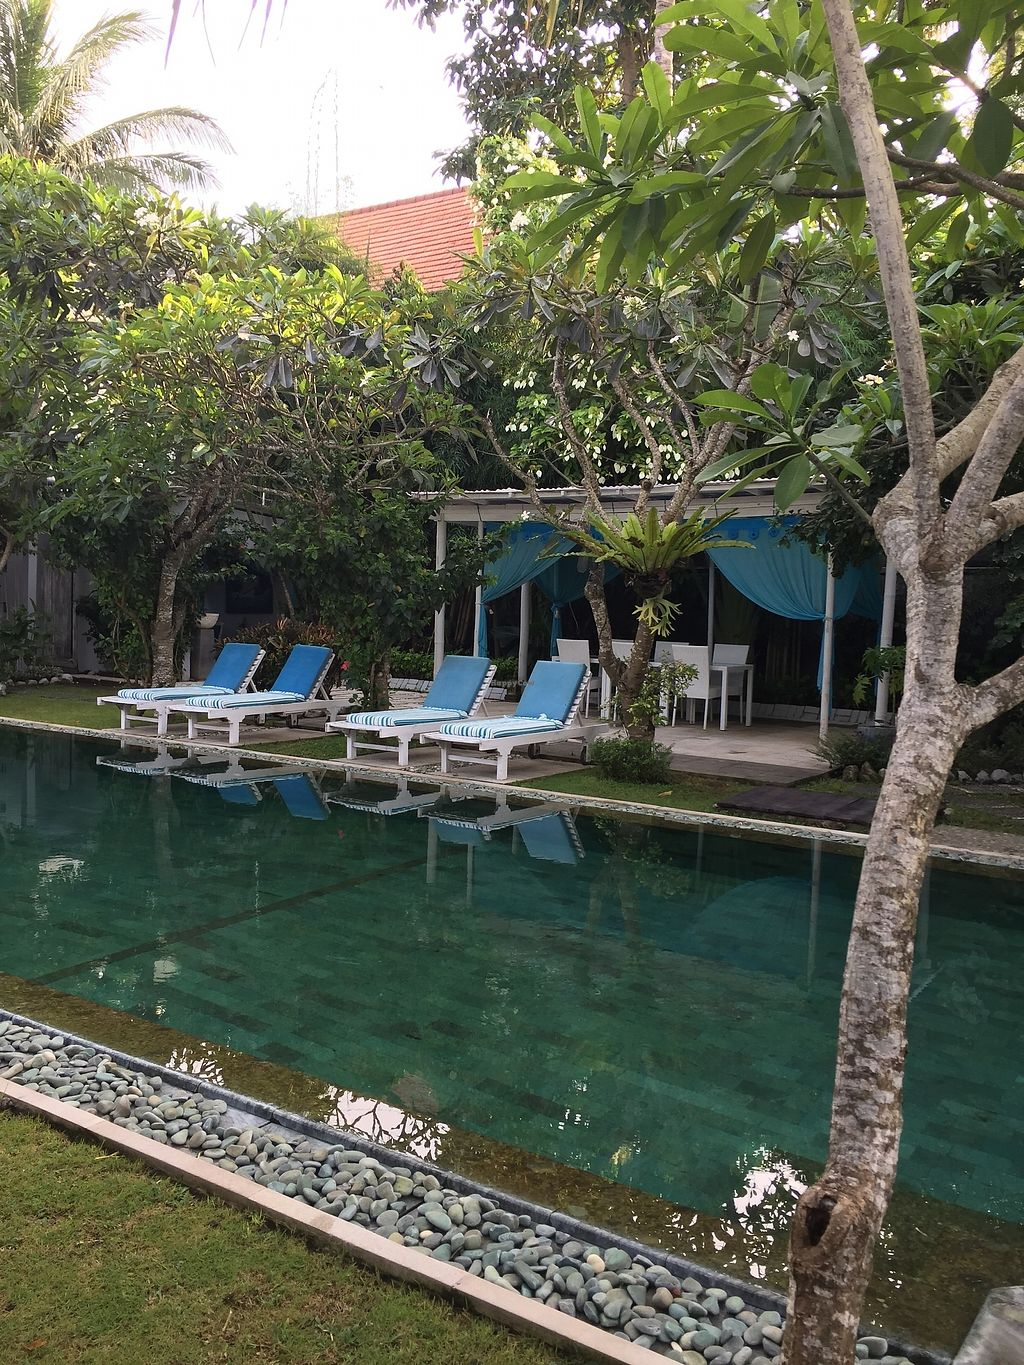 "Photo of Aquaria Eco Resort  by <a href=""/members/profile/Margaret.Hanna10"">Margaret.Hanna10</a> <br/>Restaurant by the pool and with sea view.  <br/> December 15, 2017  - <a href='/contact/abuse/image/107212/335662'>Report</a>"